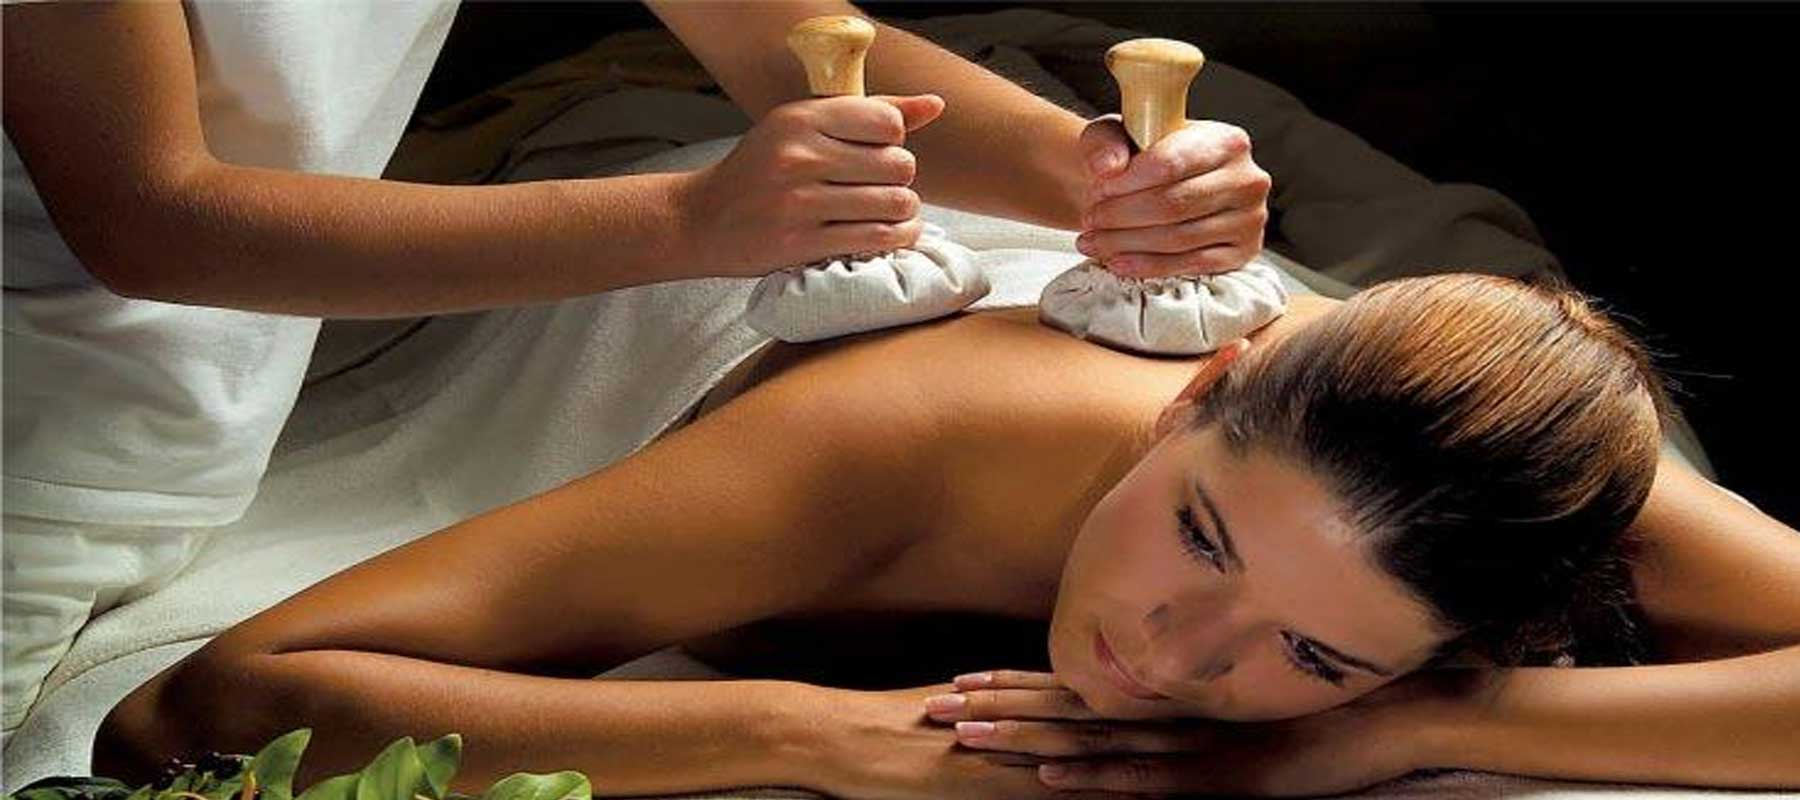 Kerala-Massage-Center-in-Qatar-kizhi-kizhi.jpg